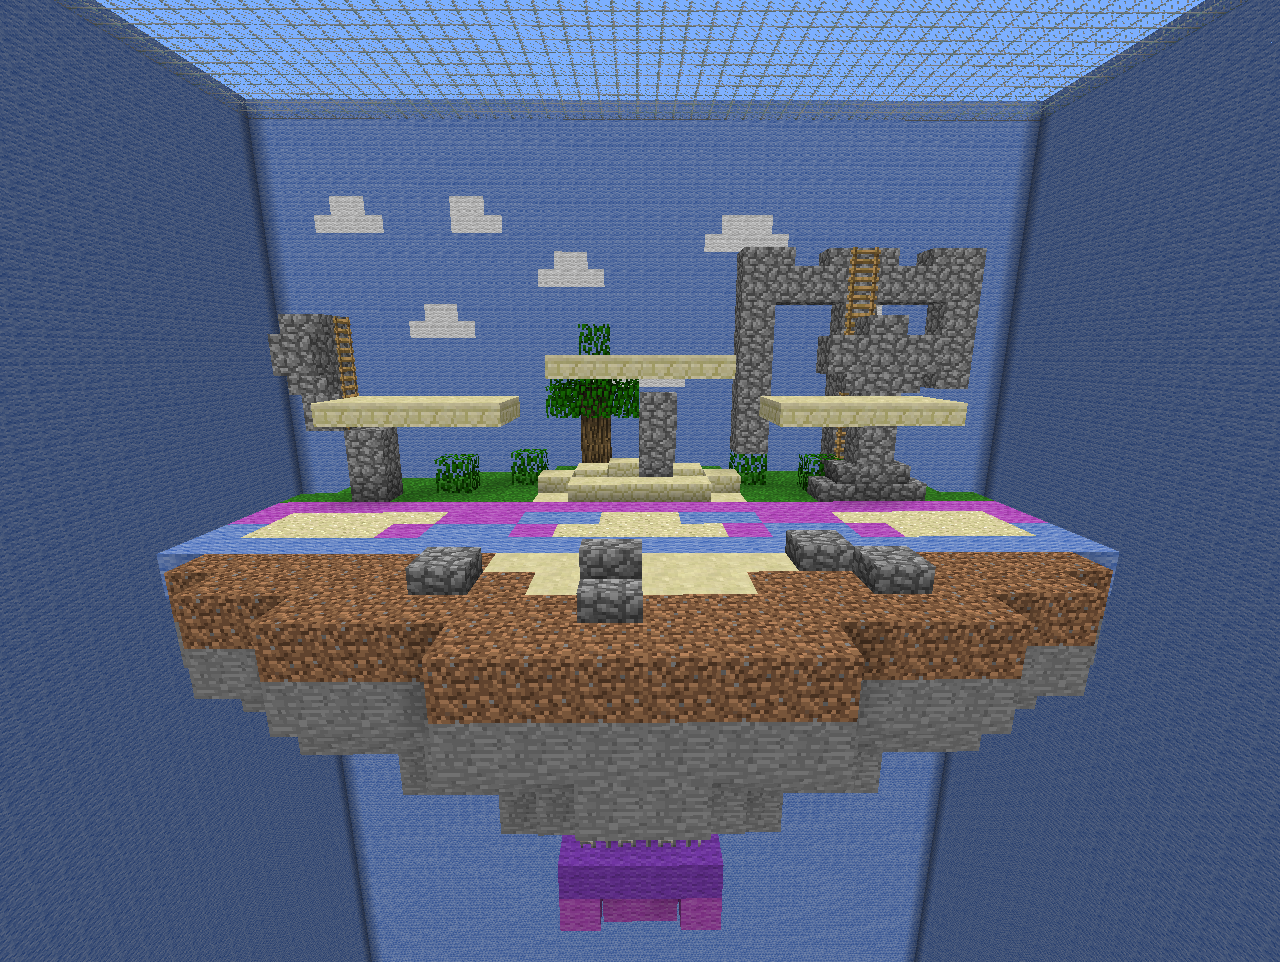 Super smash bros minecraft multiplayer pvp map download